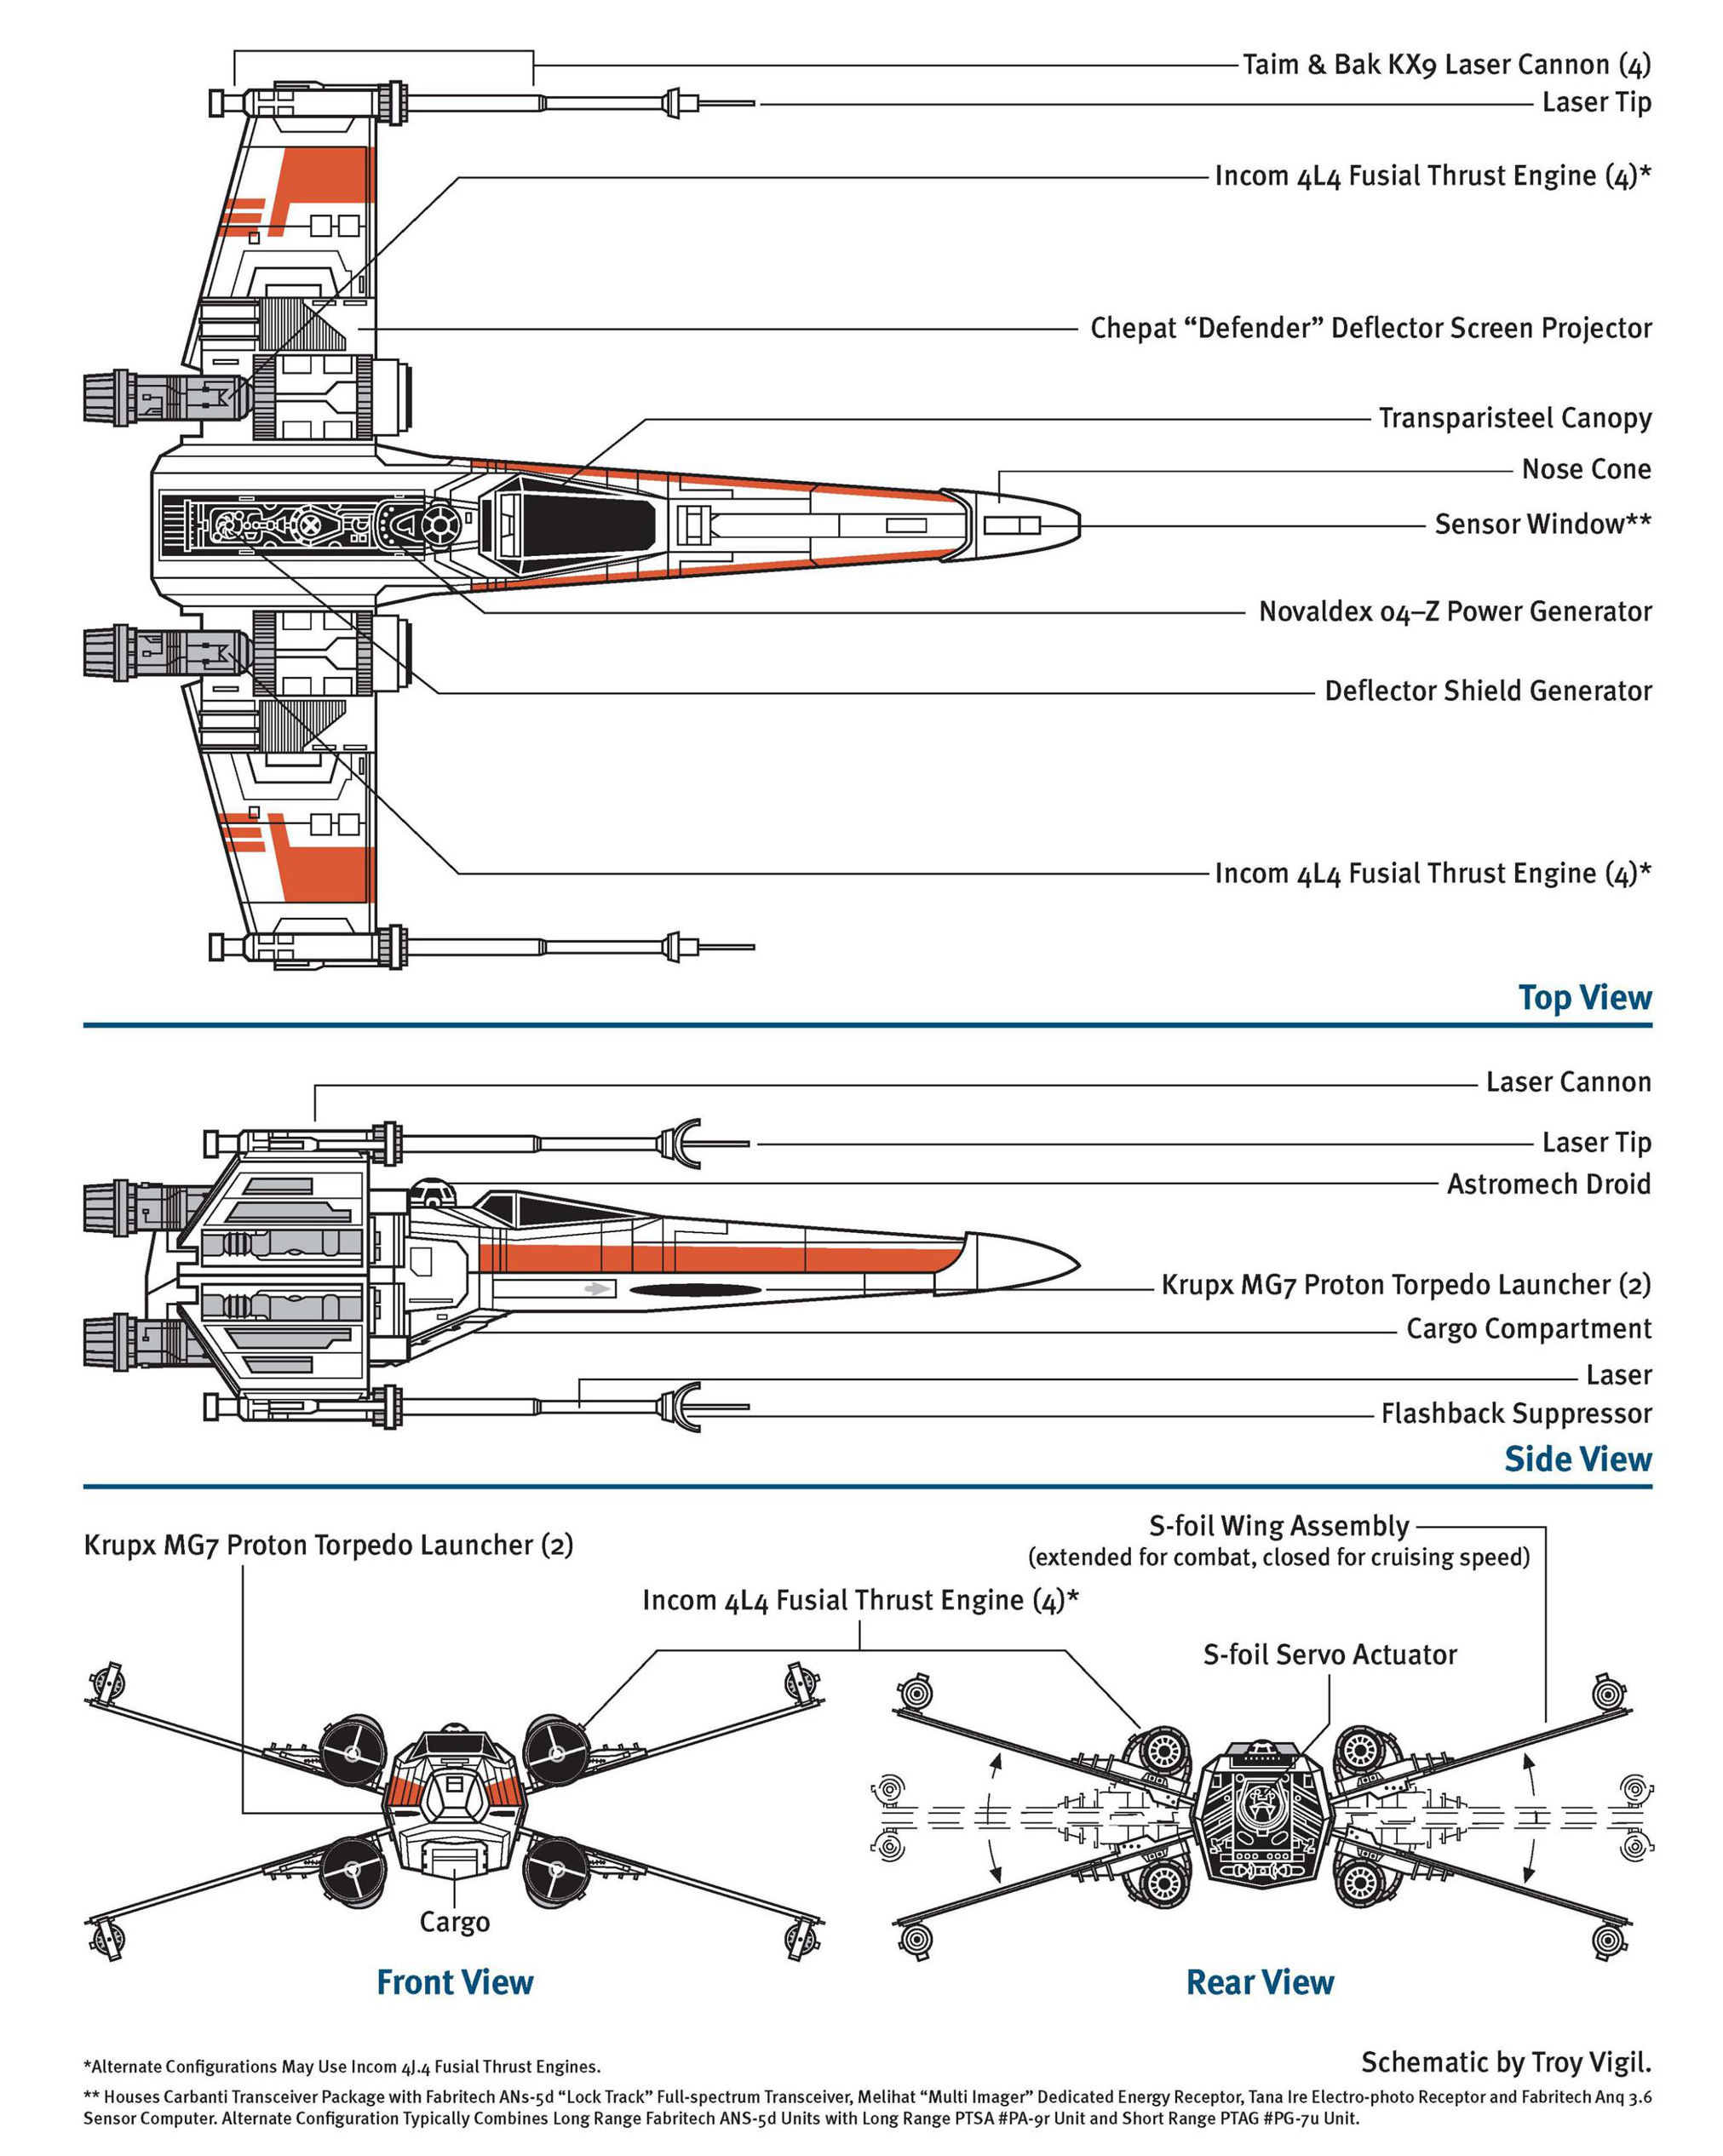 A schematic of the STAR WARS T-65 X-wing starfighter | Stuff ... on b-wing schematics, at-at schematics, a wing fighter schematics, tie interceptor schematics, minecraft schematics, y-wing schematics, halo warthog schematics,